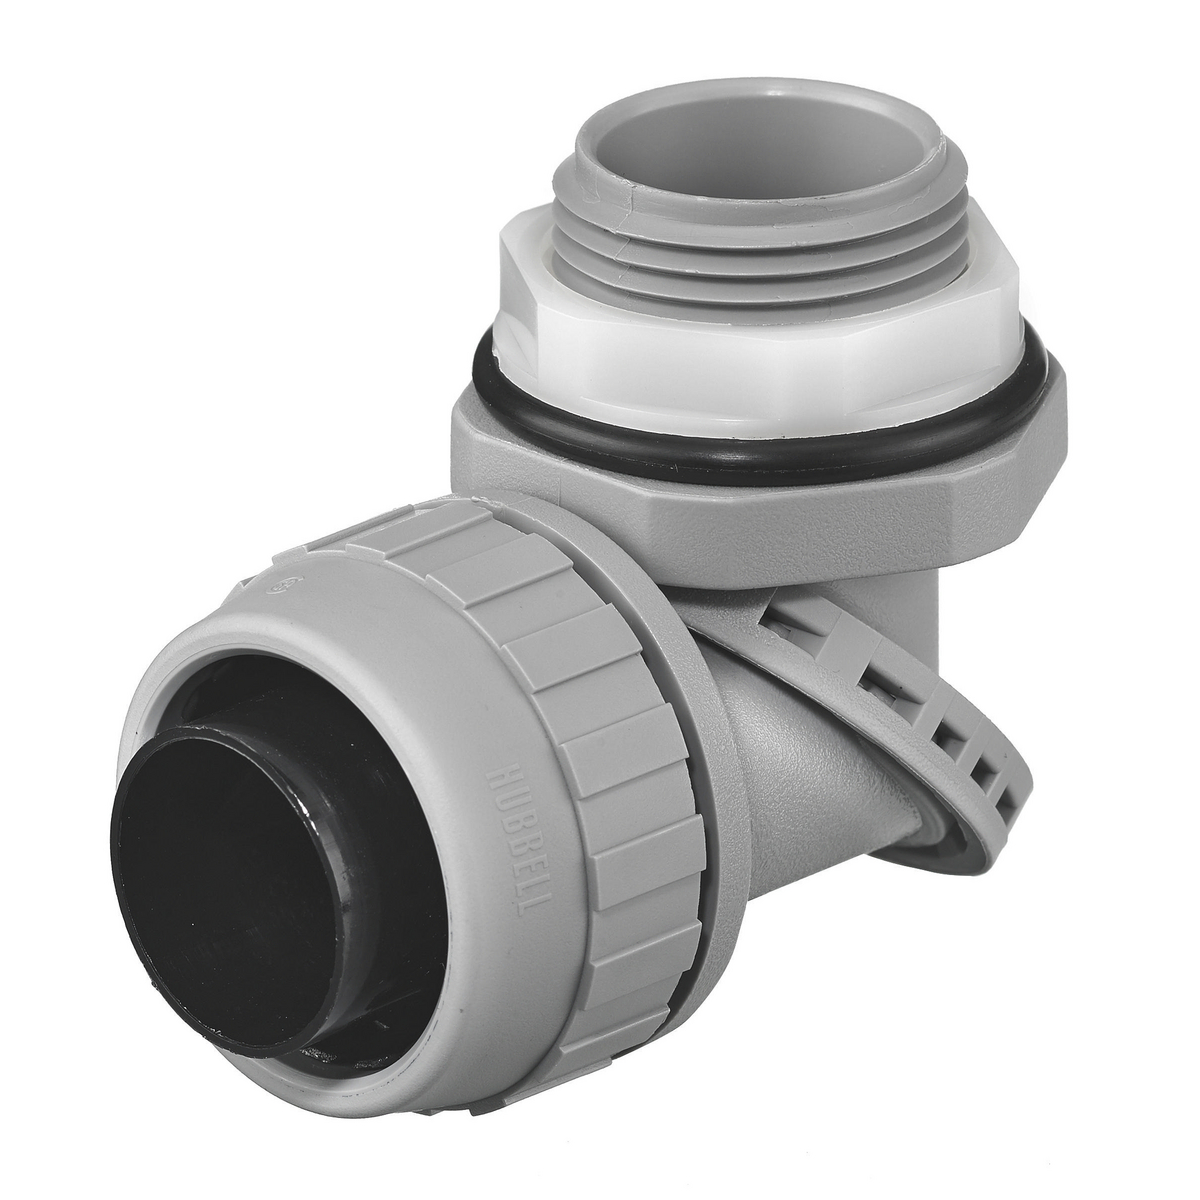 Hubbell PS1009NGY Liquidtight Fitting